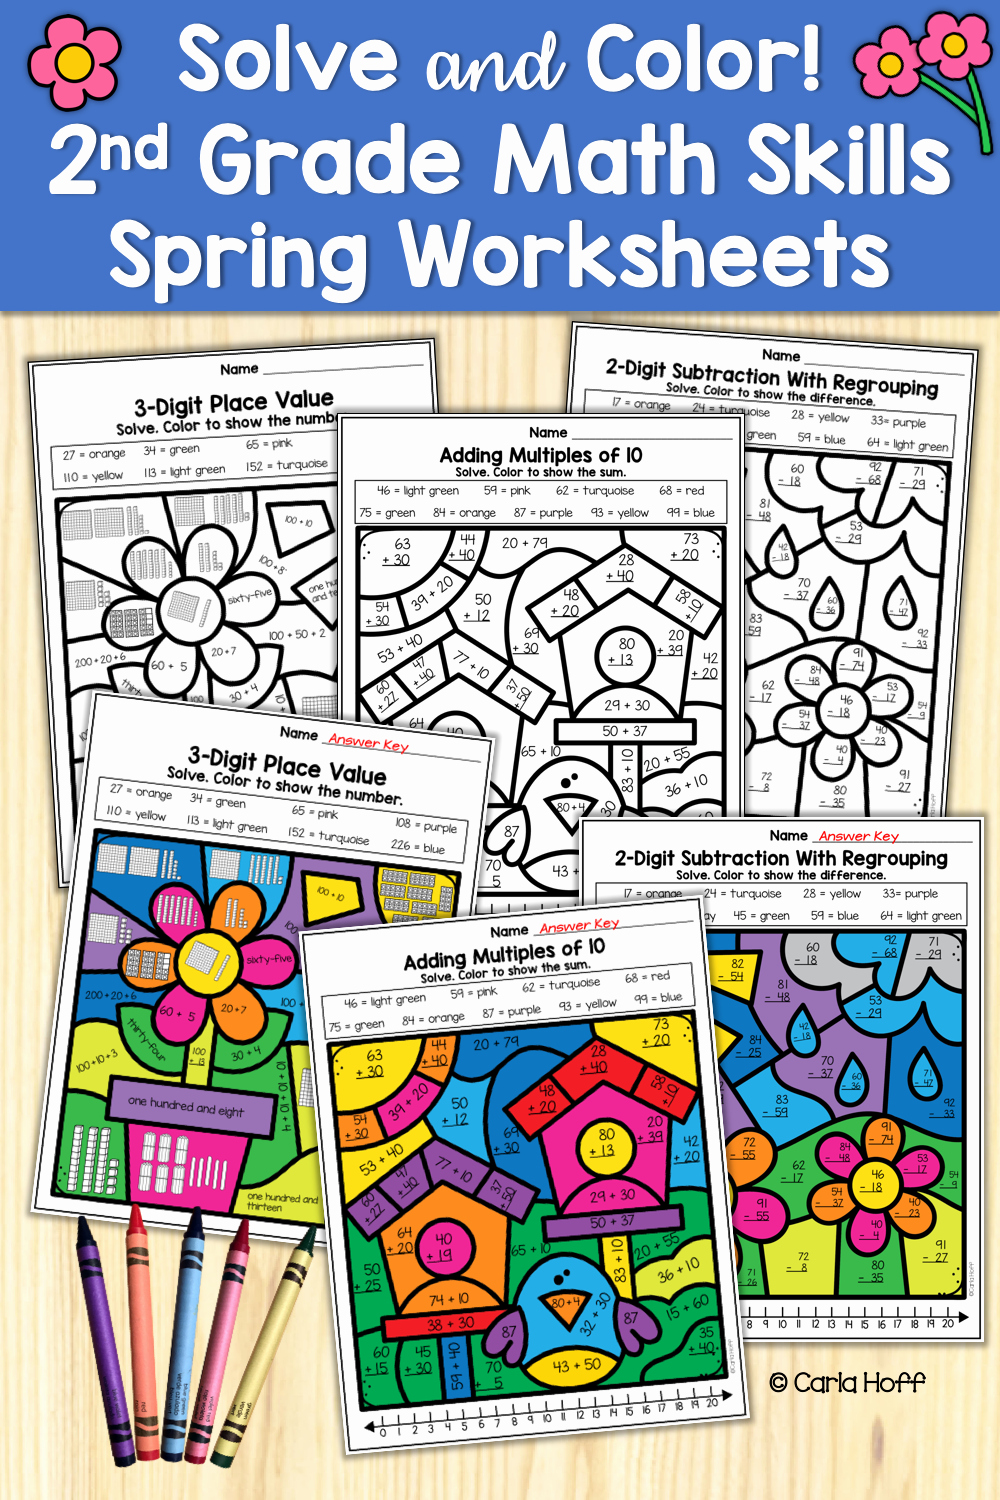 Theme Worksheets 2nd Grade Lovely solve and Color Worksheets with Spring themes Make